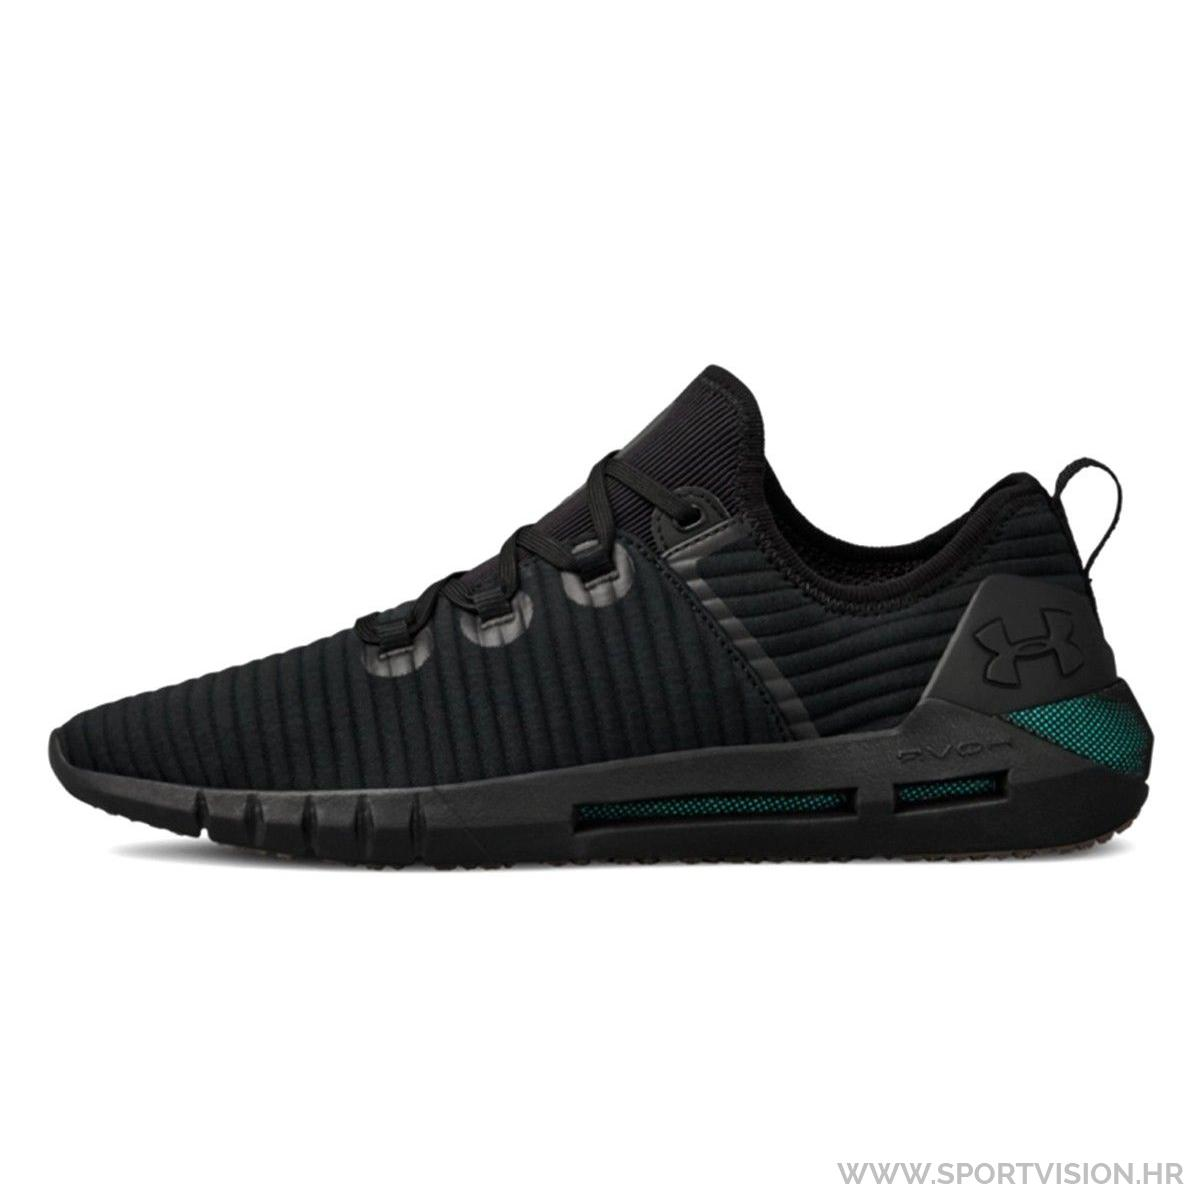 UNDER ARMOUR tenisice HOVR SLK LN